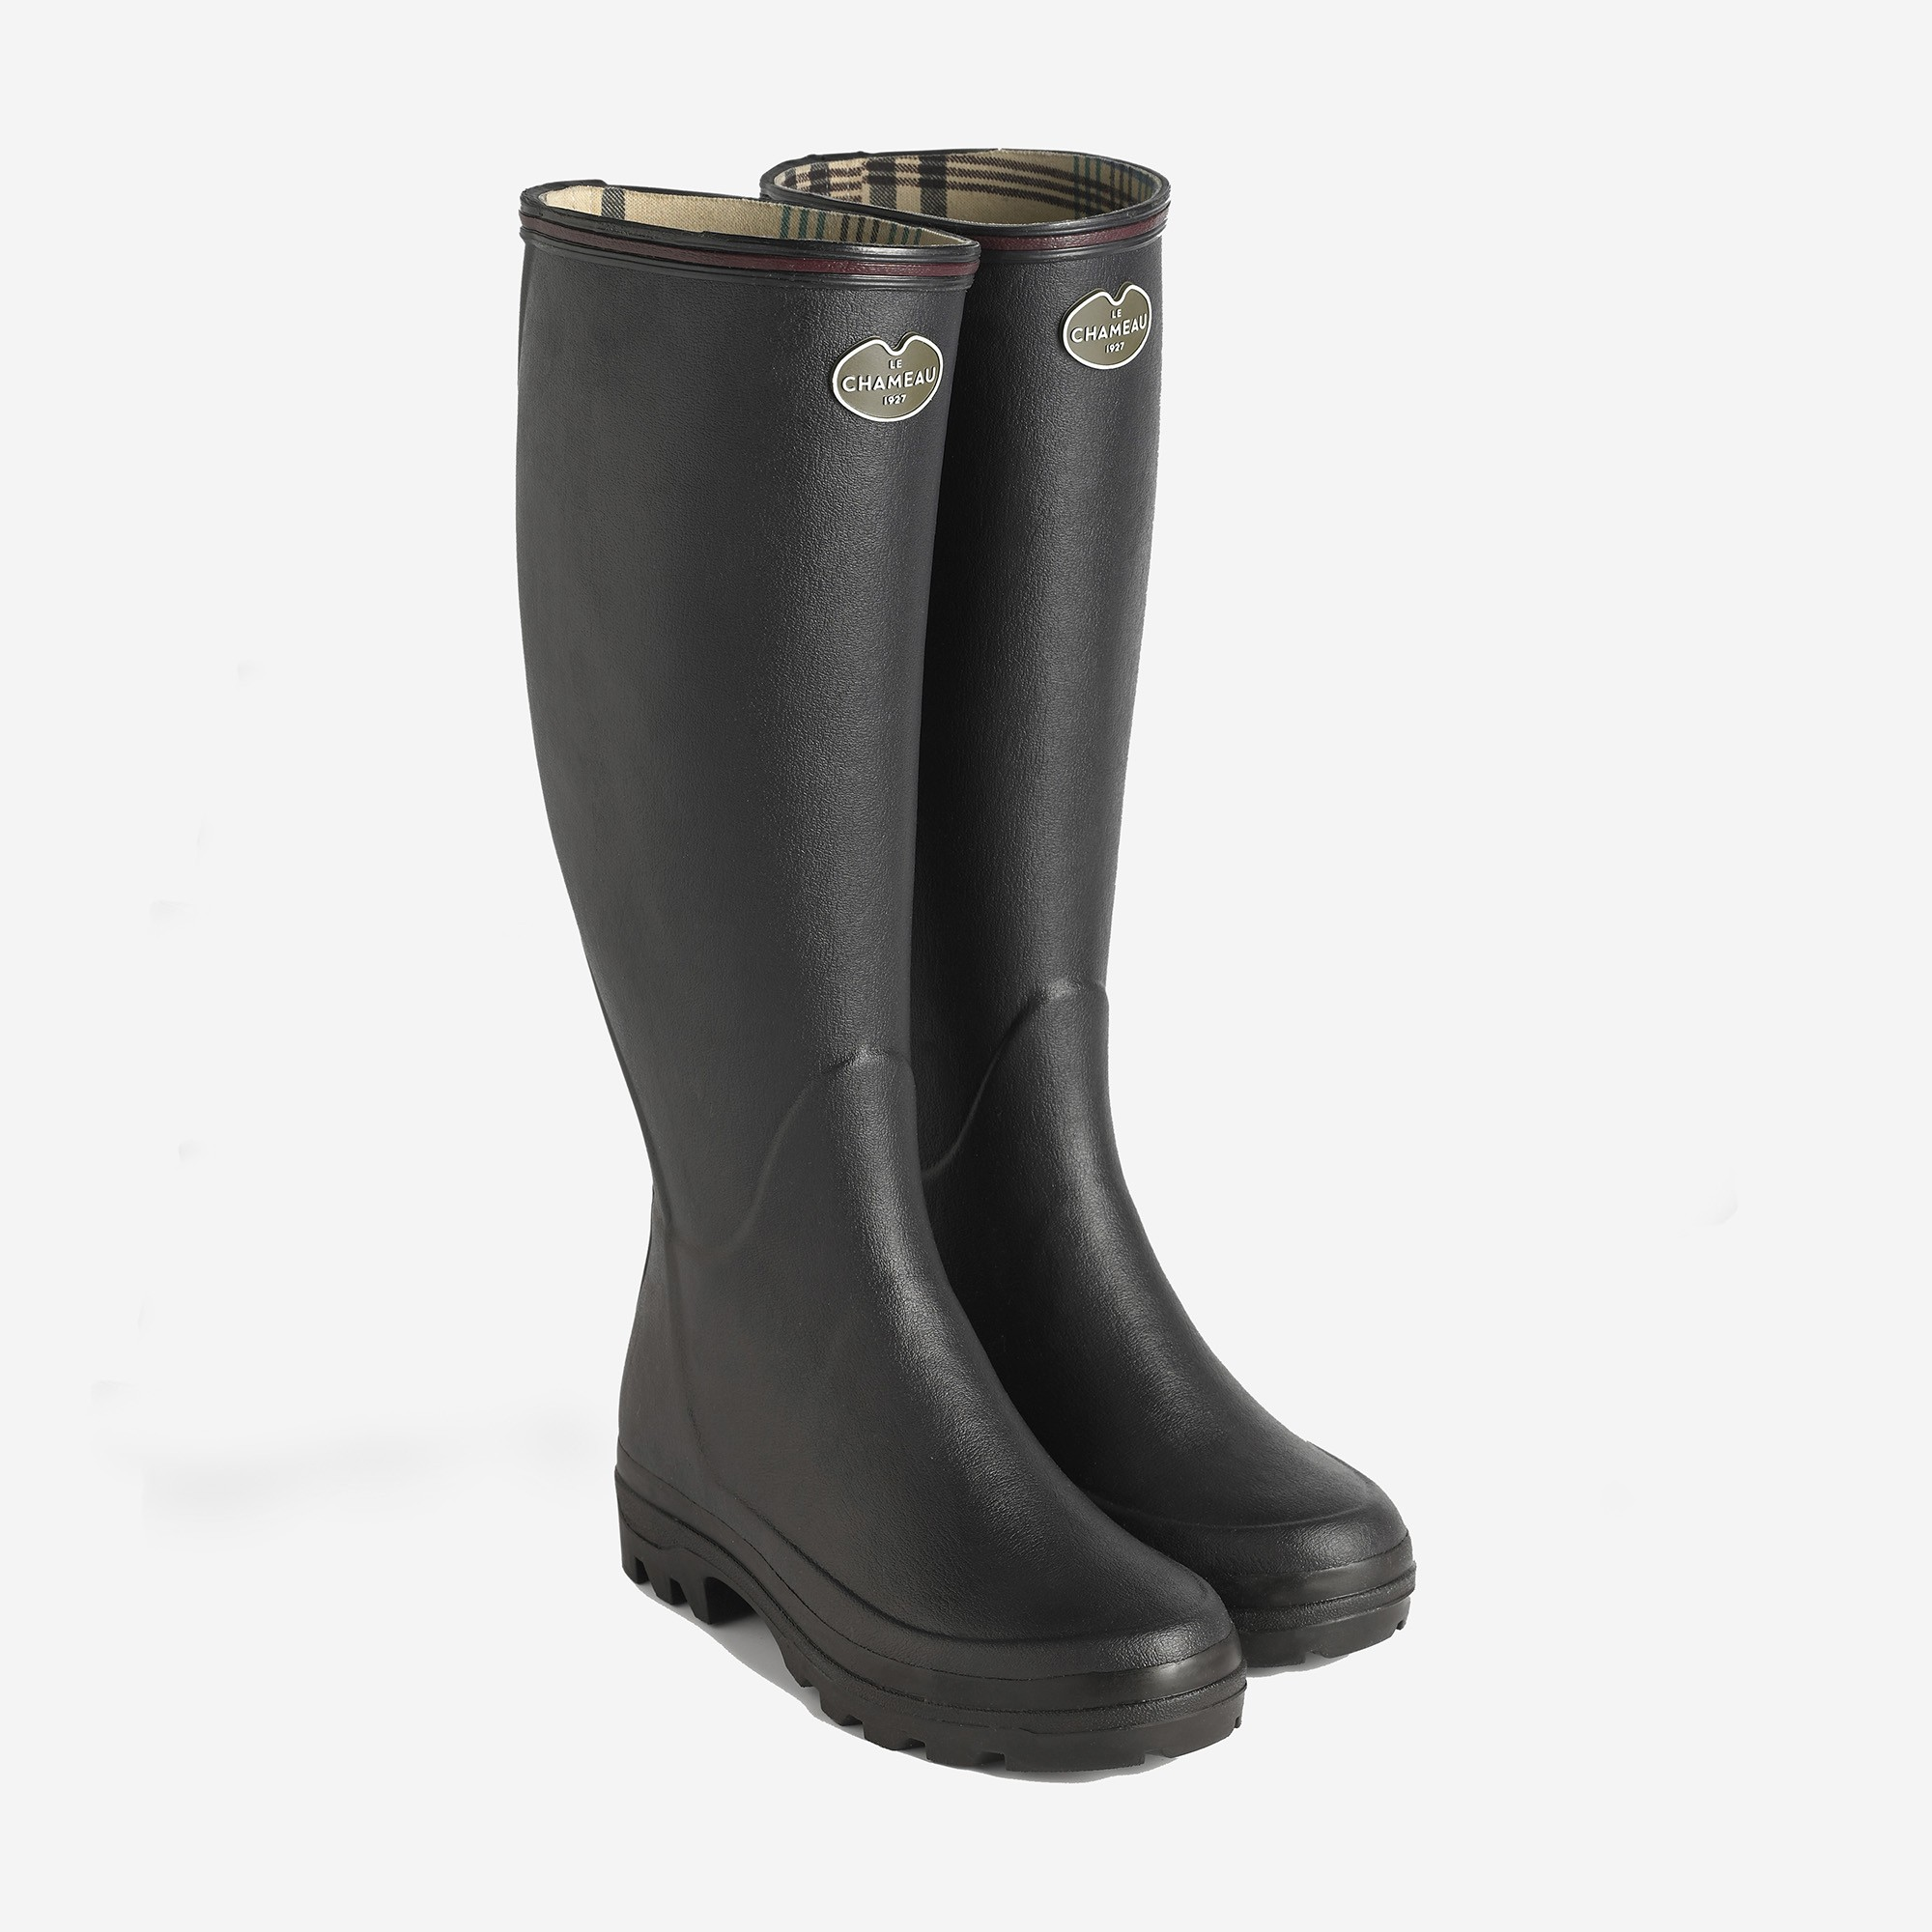 Le Chameau Giverny Ladies Wellington Boots (Black)-6